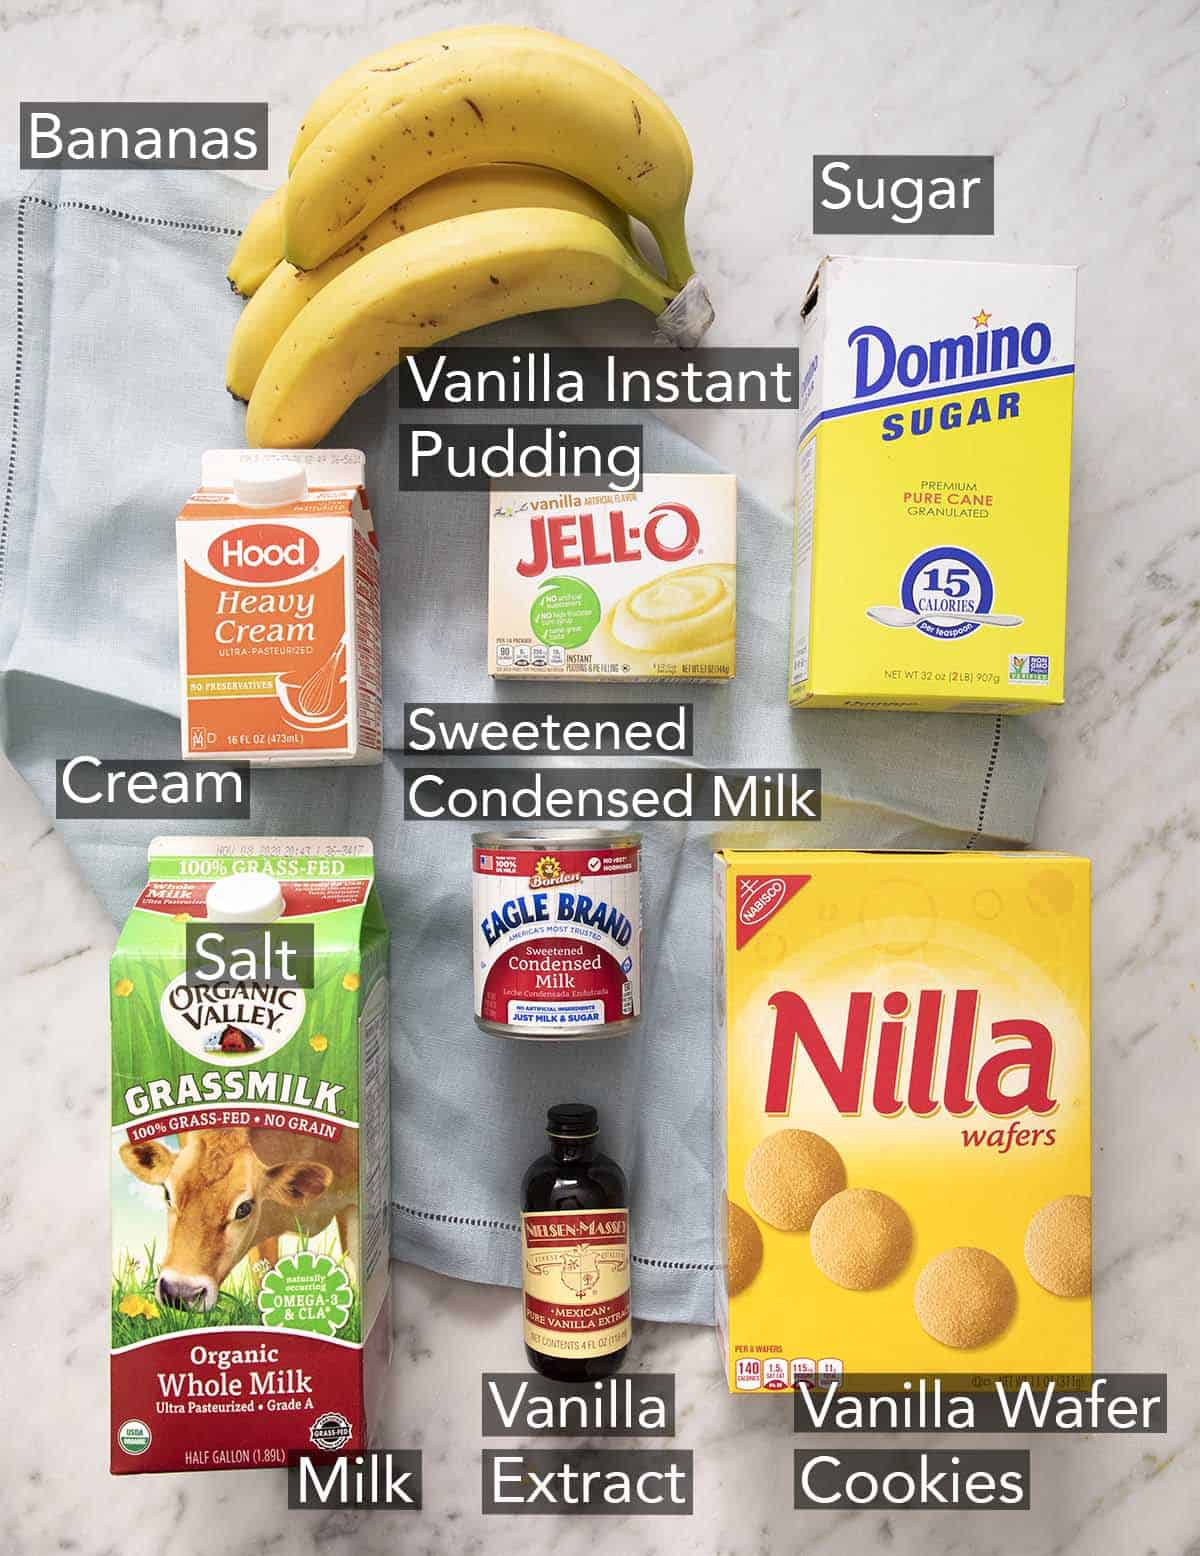 Ingredients for banana pudding on a marble counter.